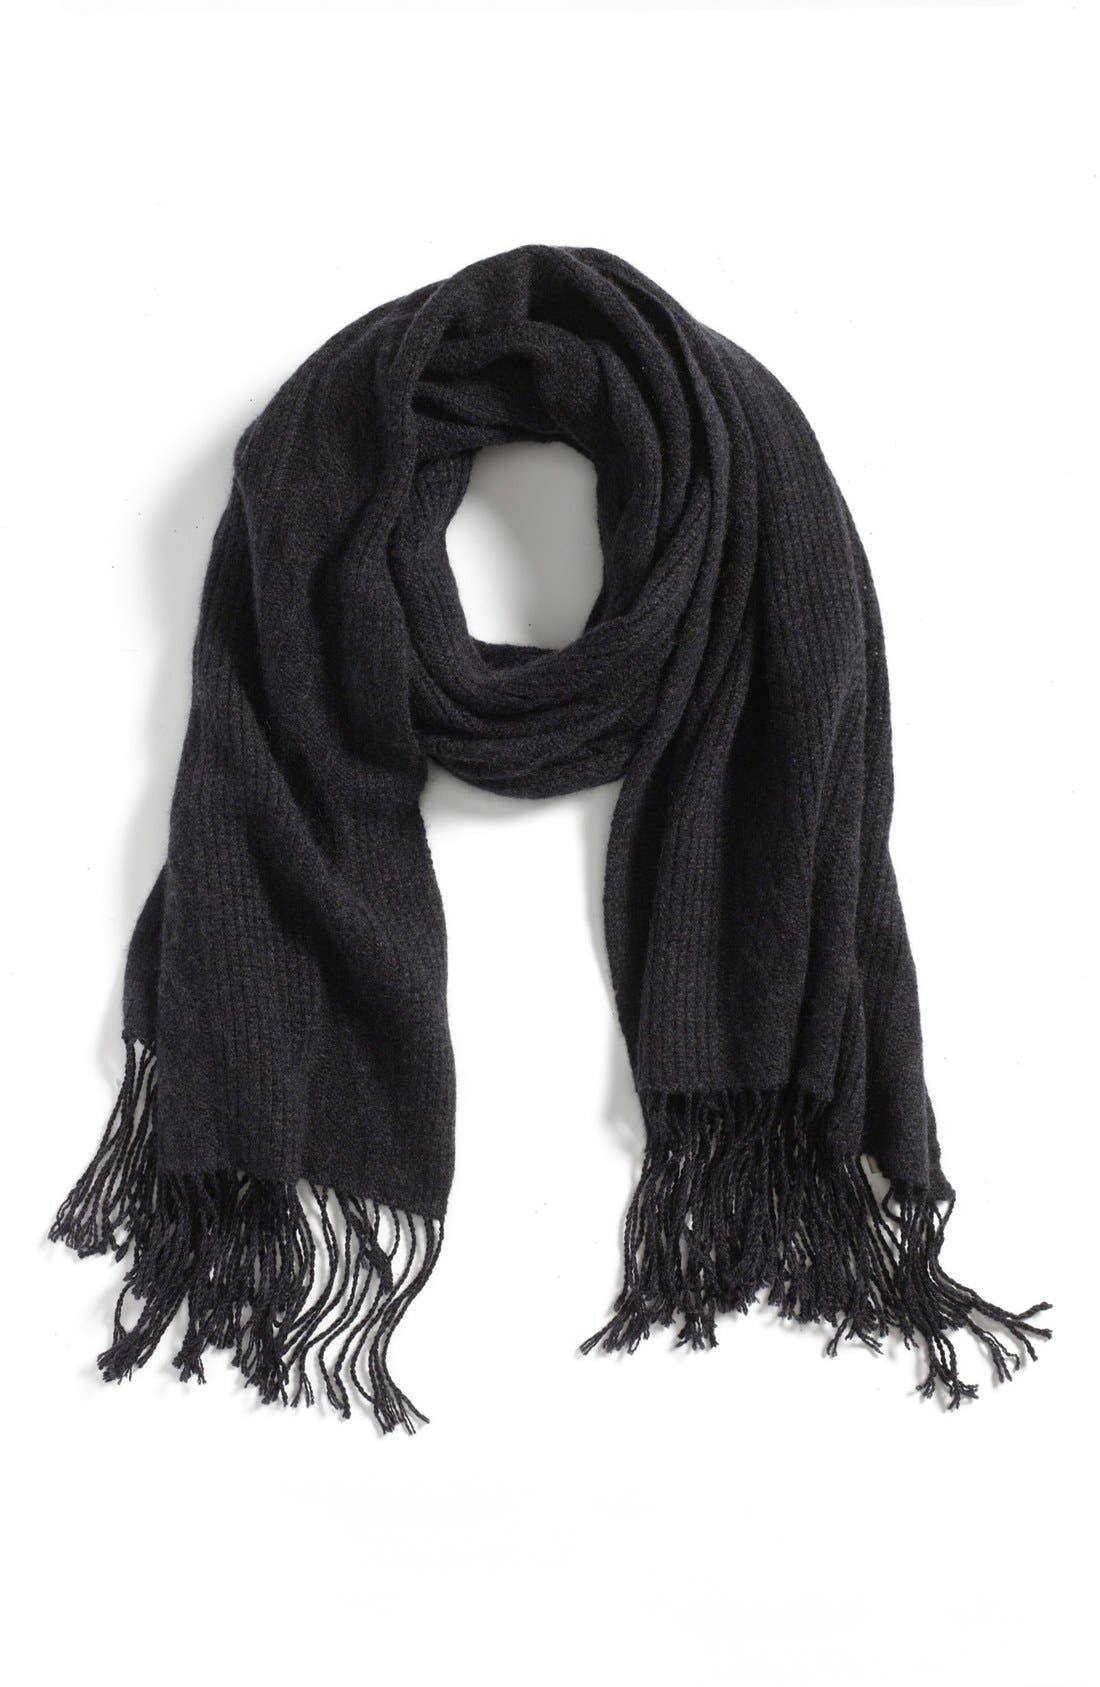 'Luxe' Cable Knit Cashmere Scarf,                             Main thumbnail 1, color,                             001